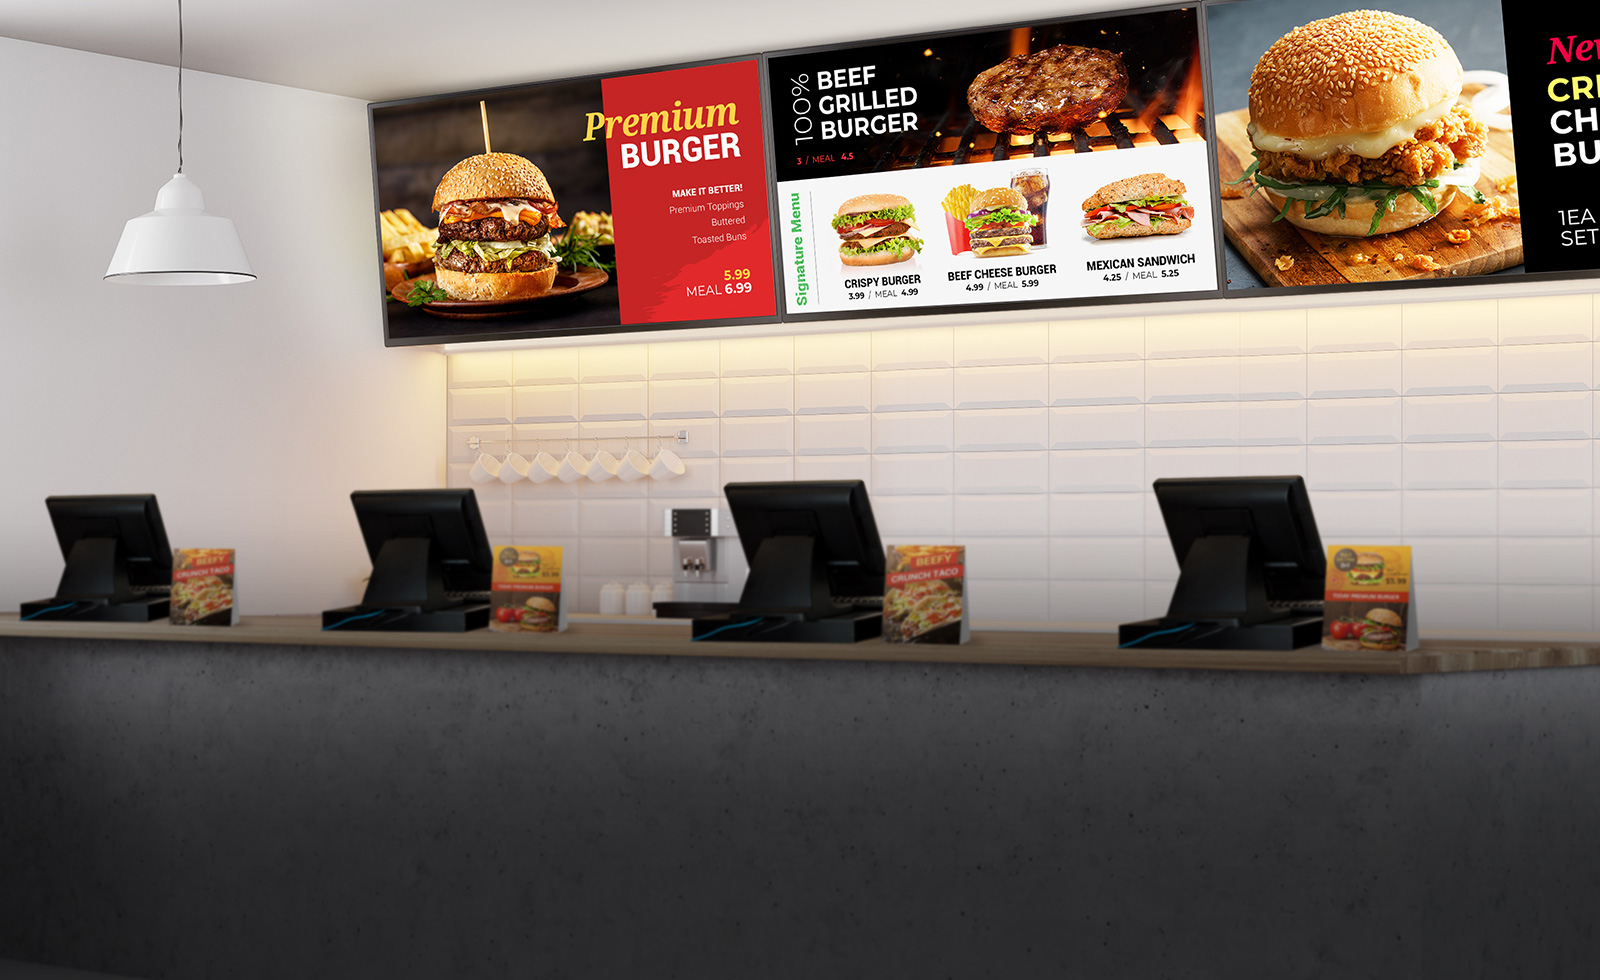 LG commercial displays at a fast-food burger restaurant behind the point of sale kiosks